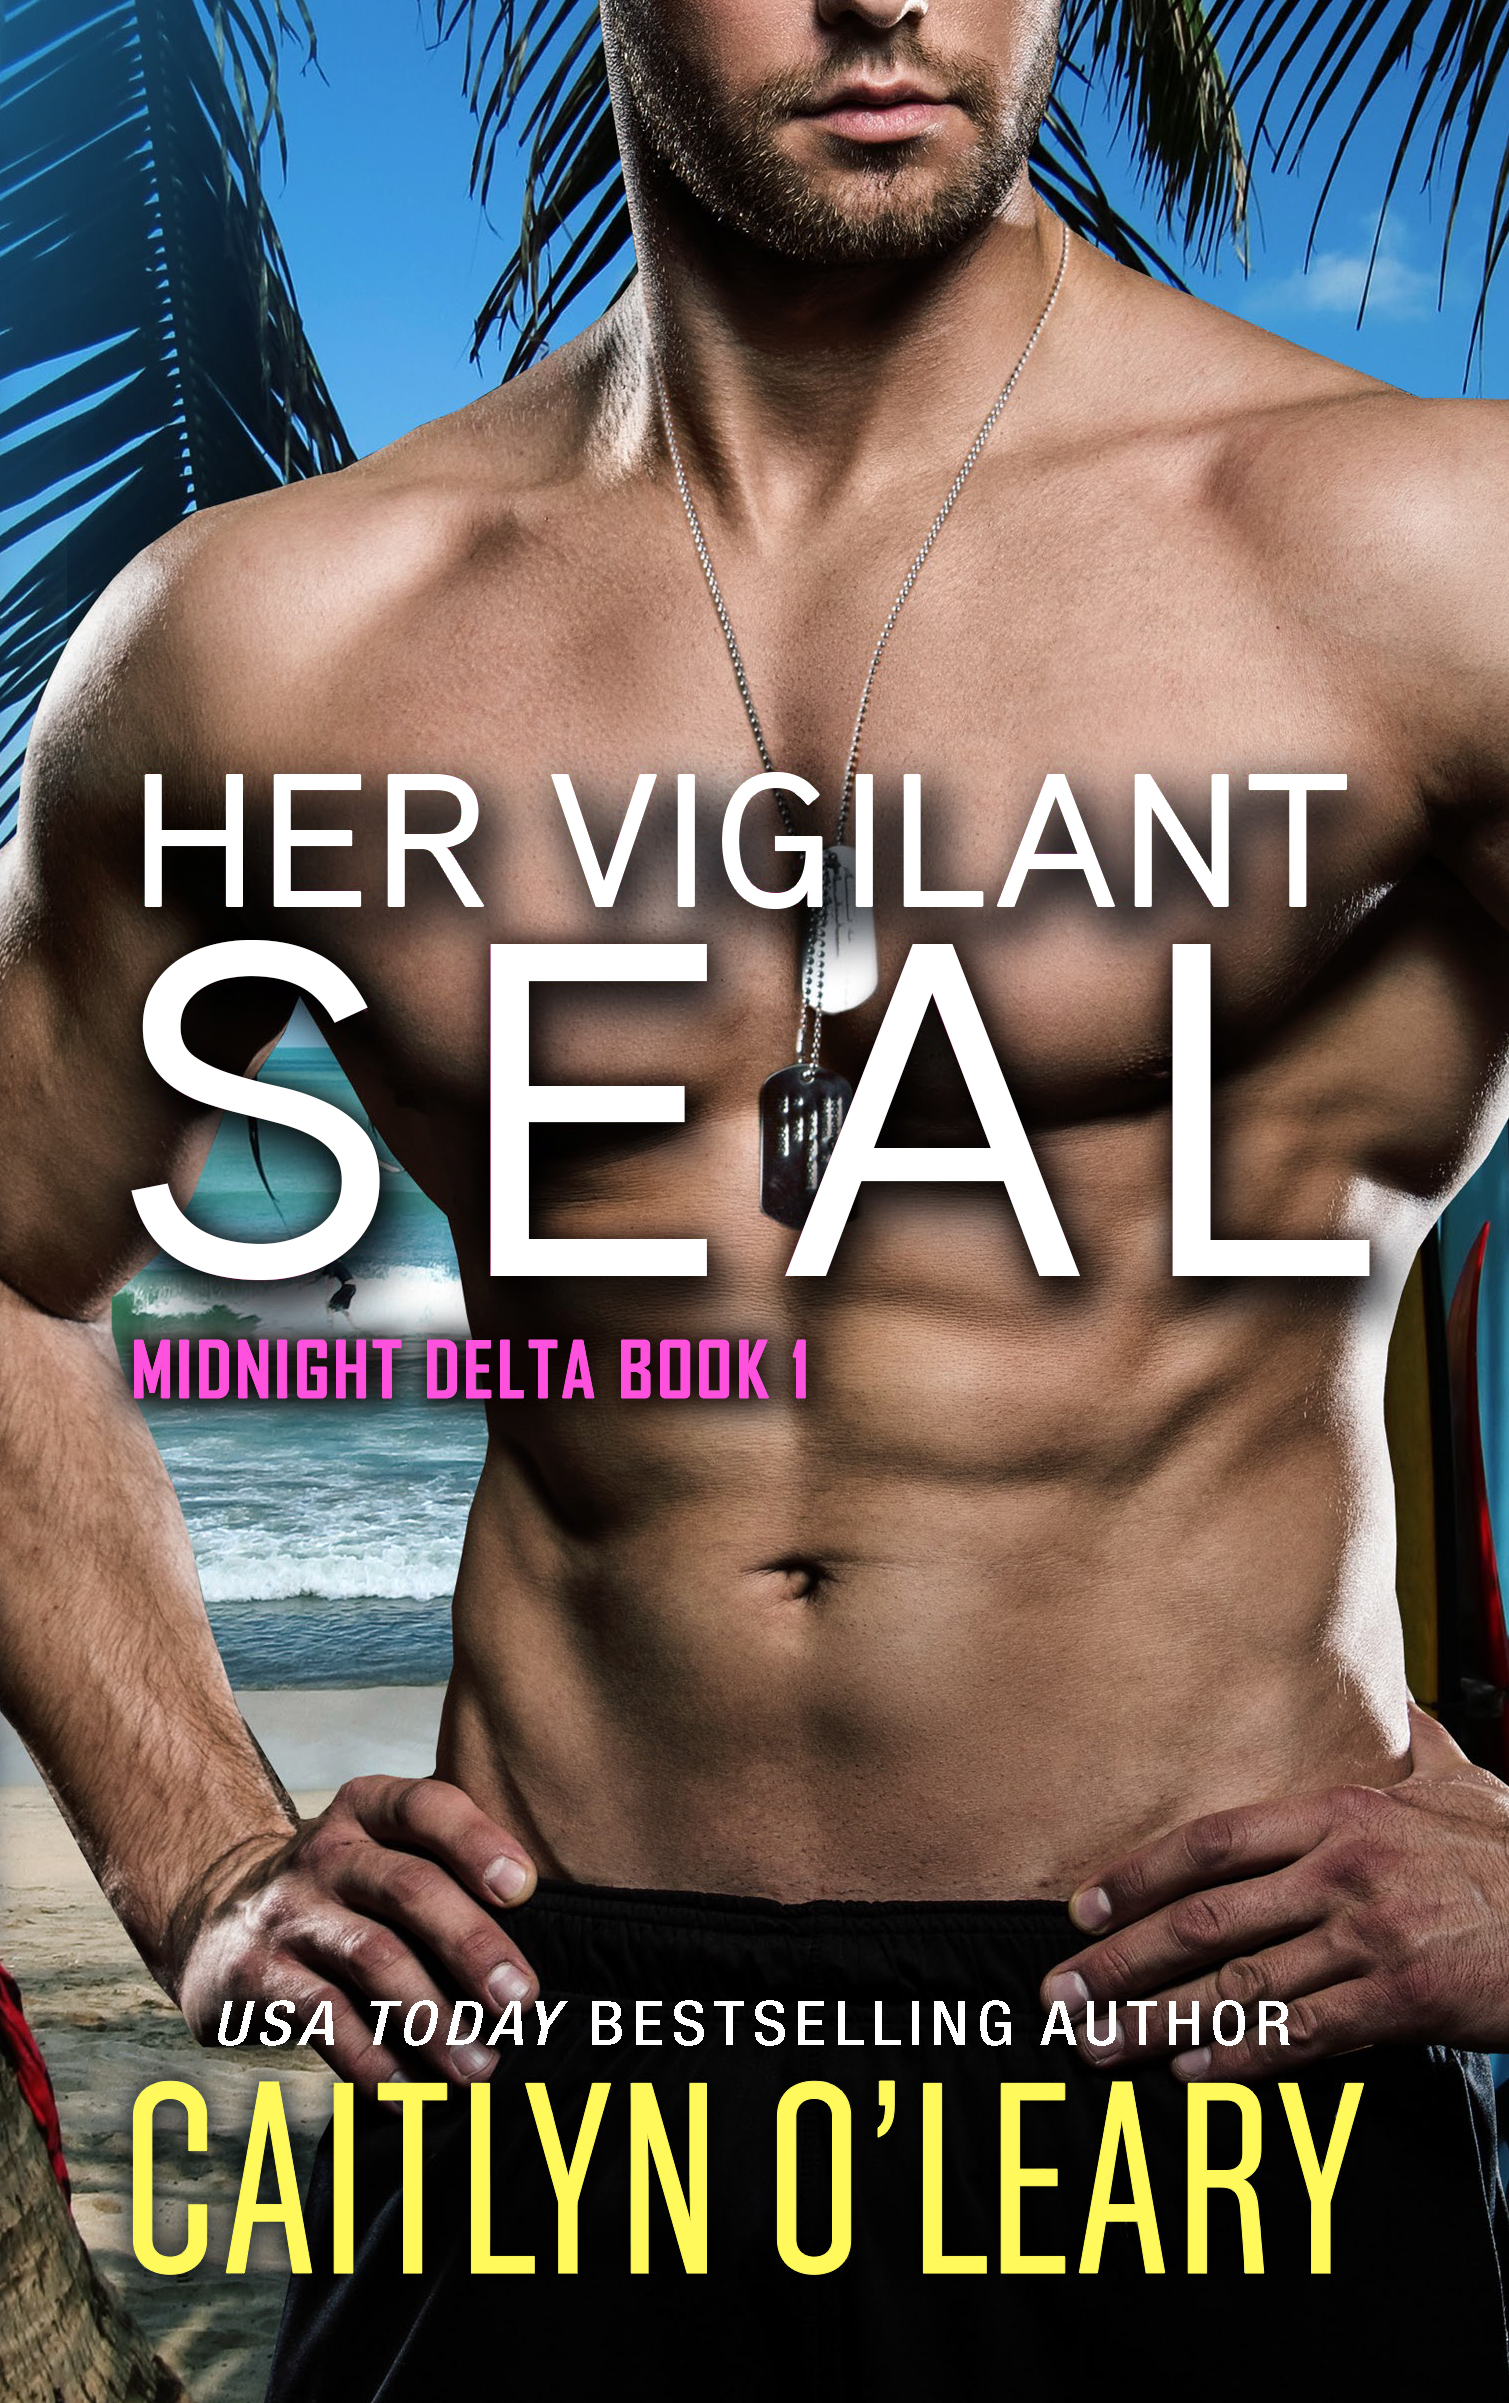 Her Vigilant SEAL (Signed)